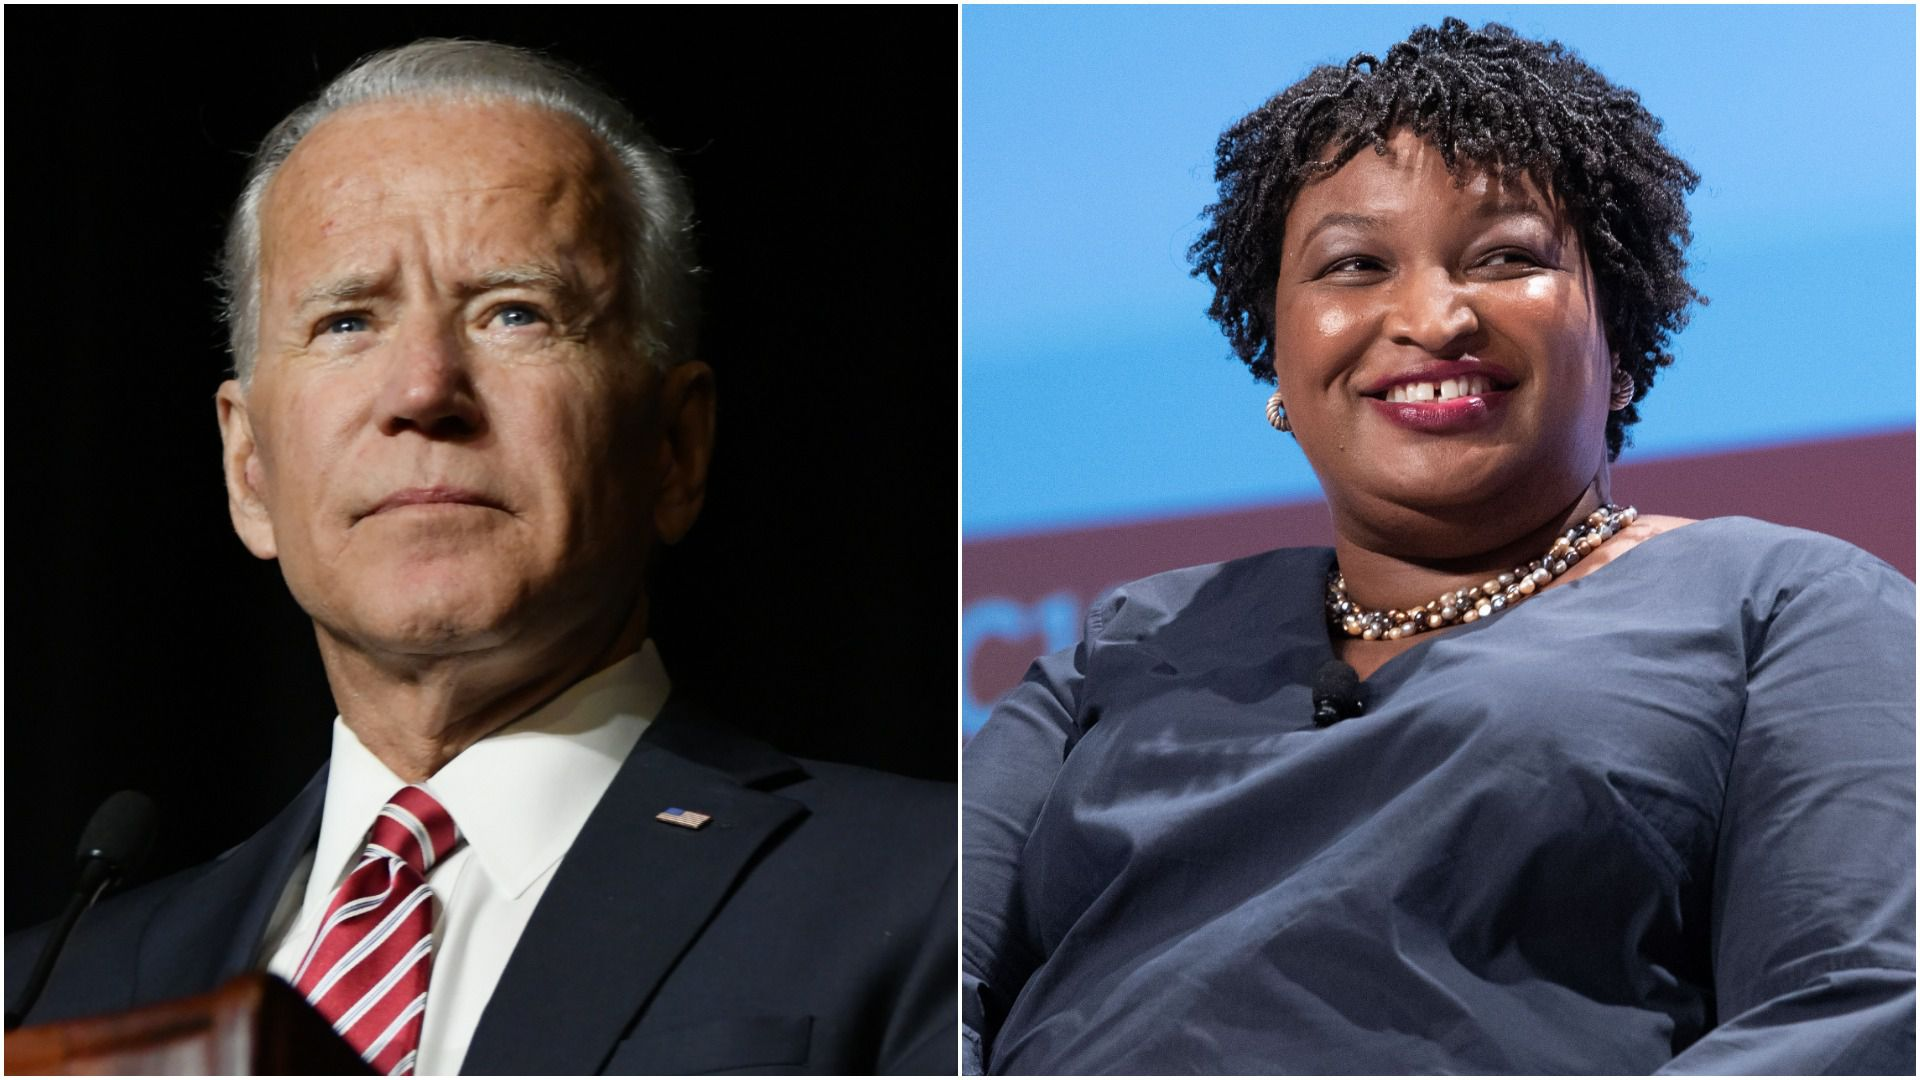 Biden and Abrams will not share a 2020 ticket